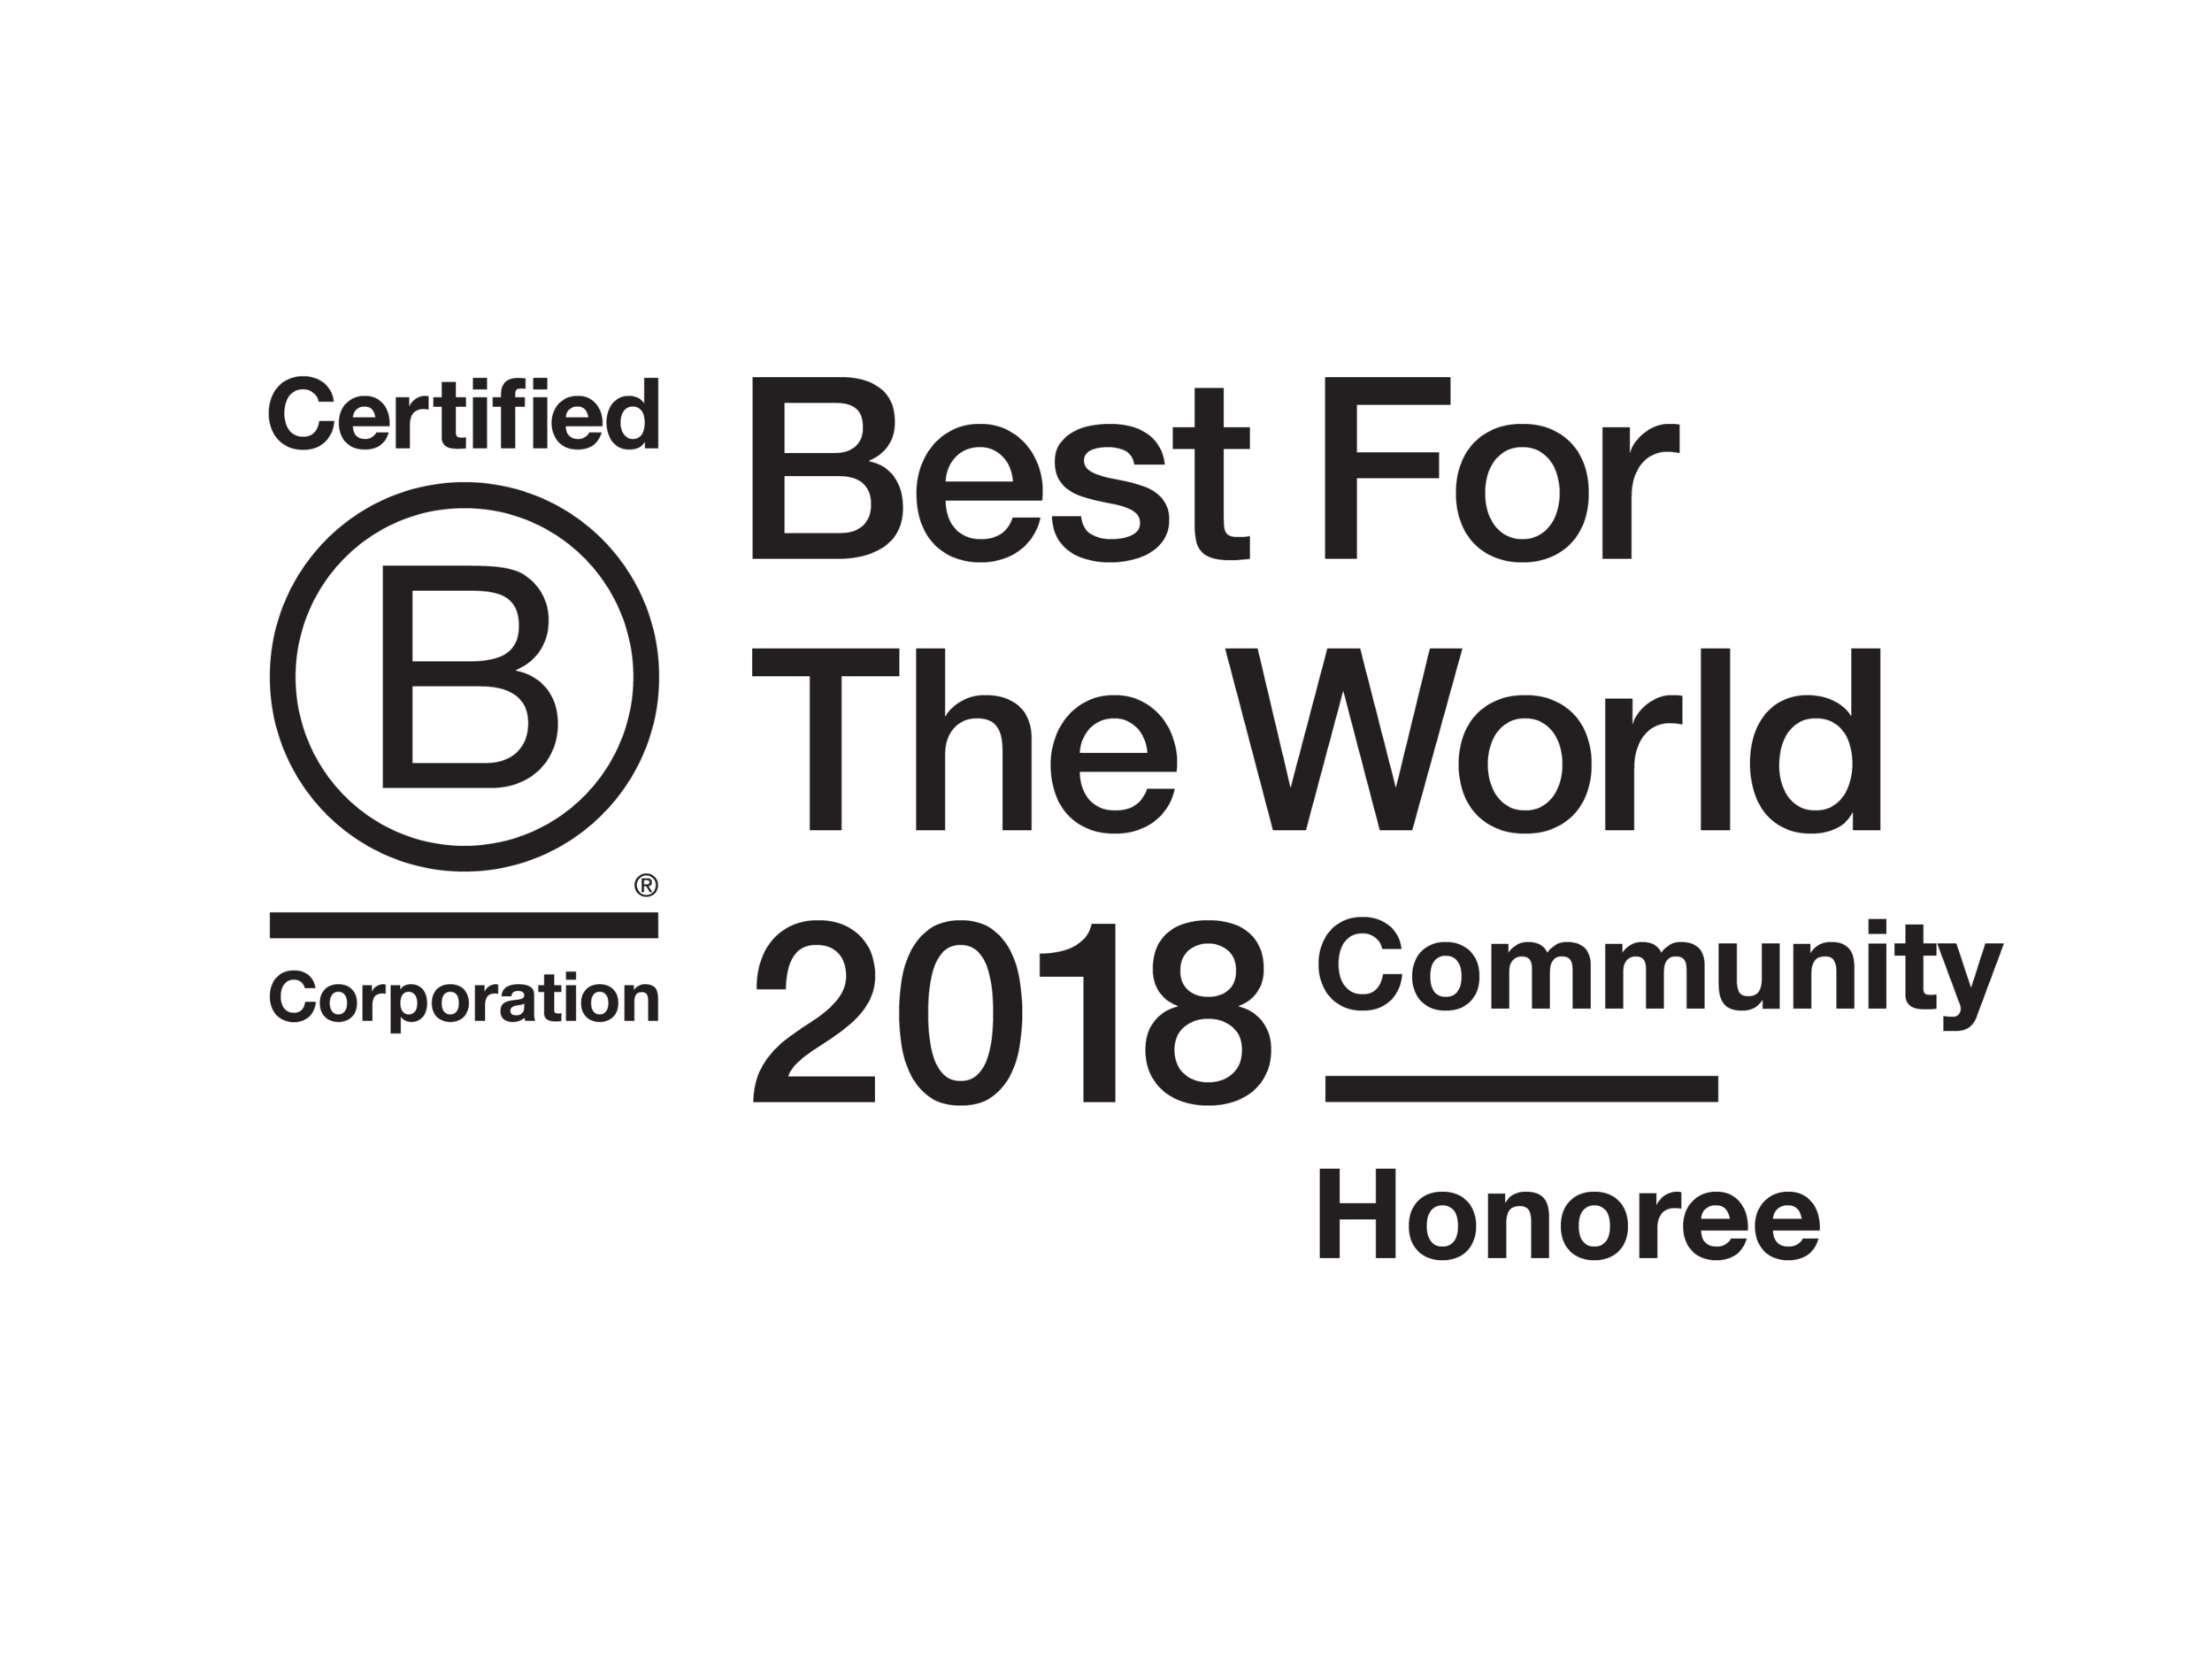 BFTW-Community-2018-Logo-Black.png